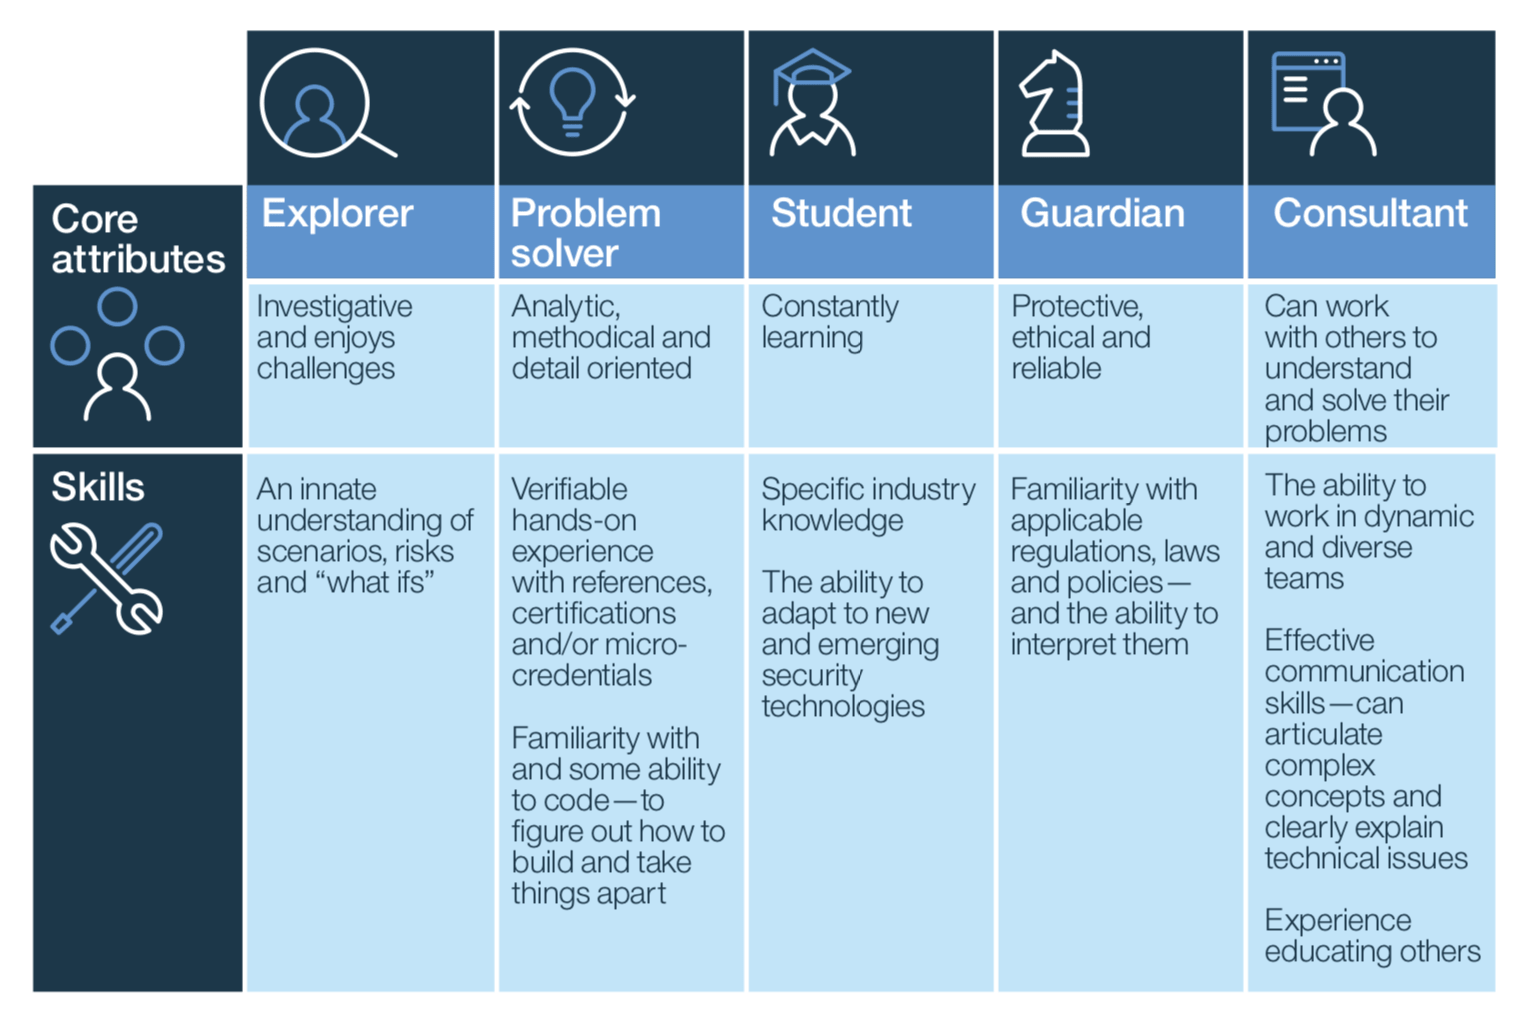 This figure list five core cybersecurity attributes: Explorer, Problem Solver, Student, Guardian, and Consultant - that includes 'enjoying challenges' and 'constantly learning' as key components.